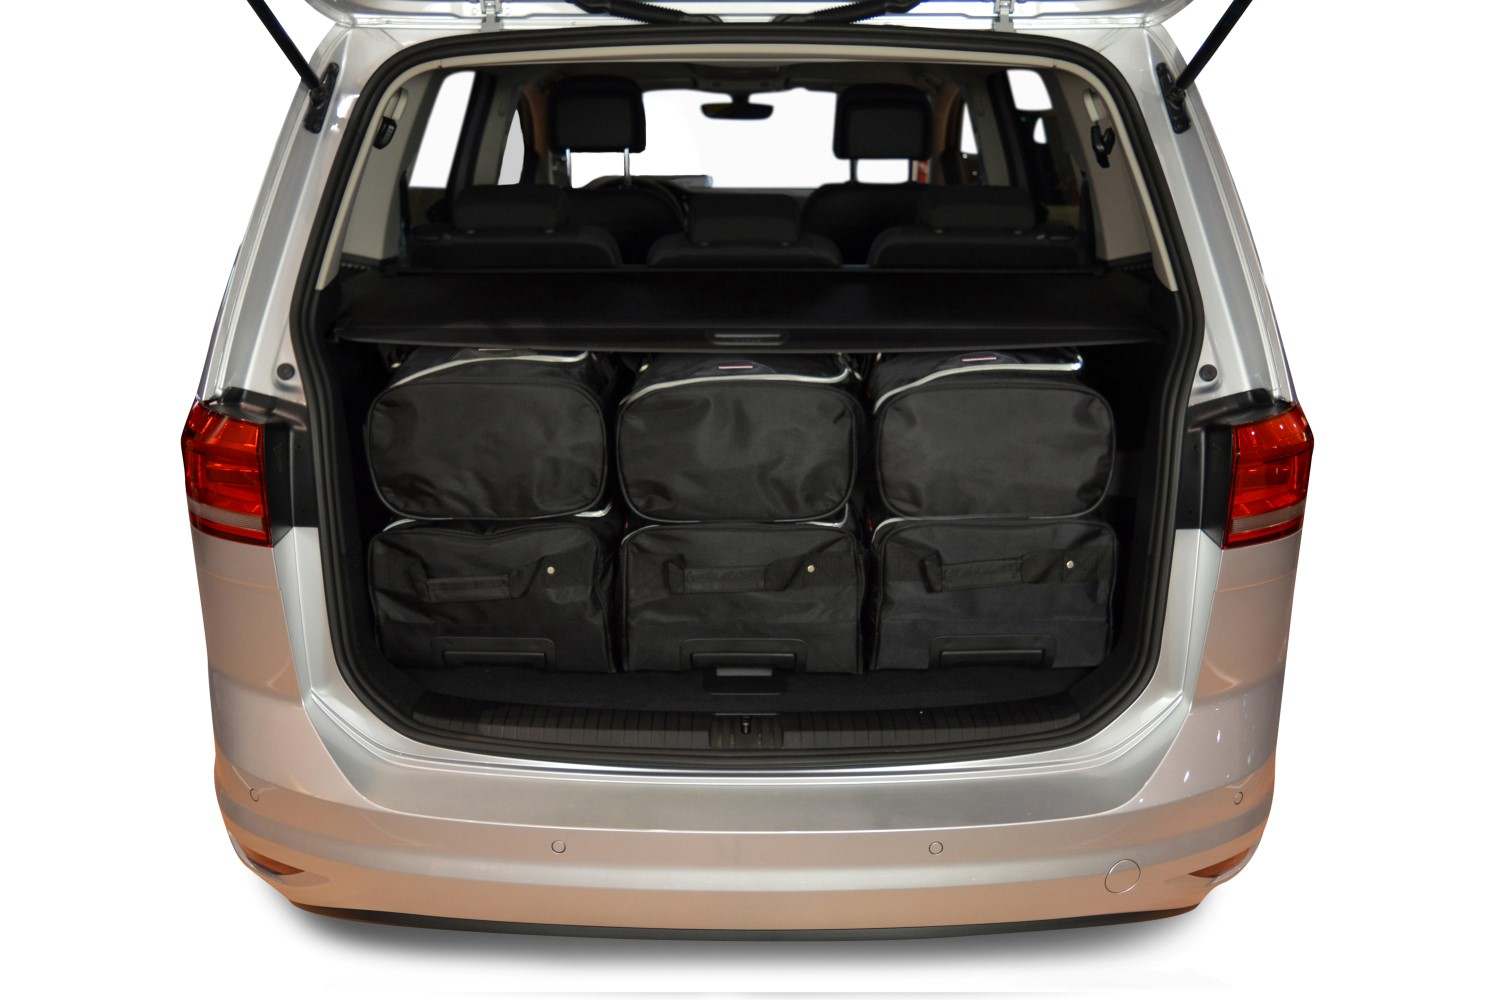 touran volkswagen touran ii 5t 2015 present car bags travel bags. Black Bedroom Furniture Sets. Home Design Ideas